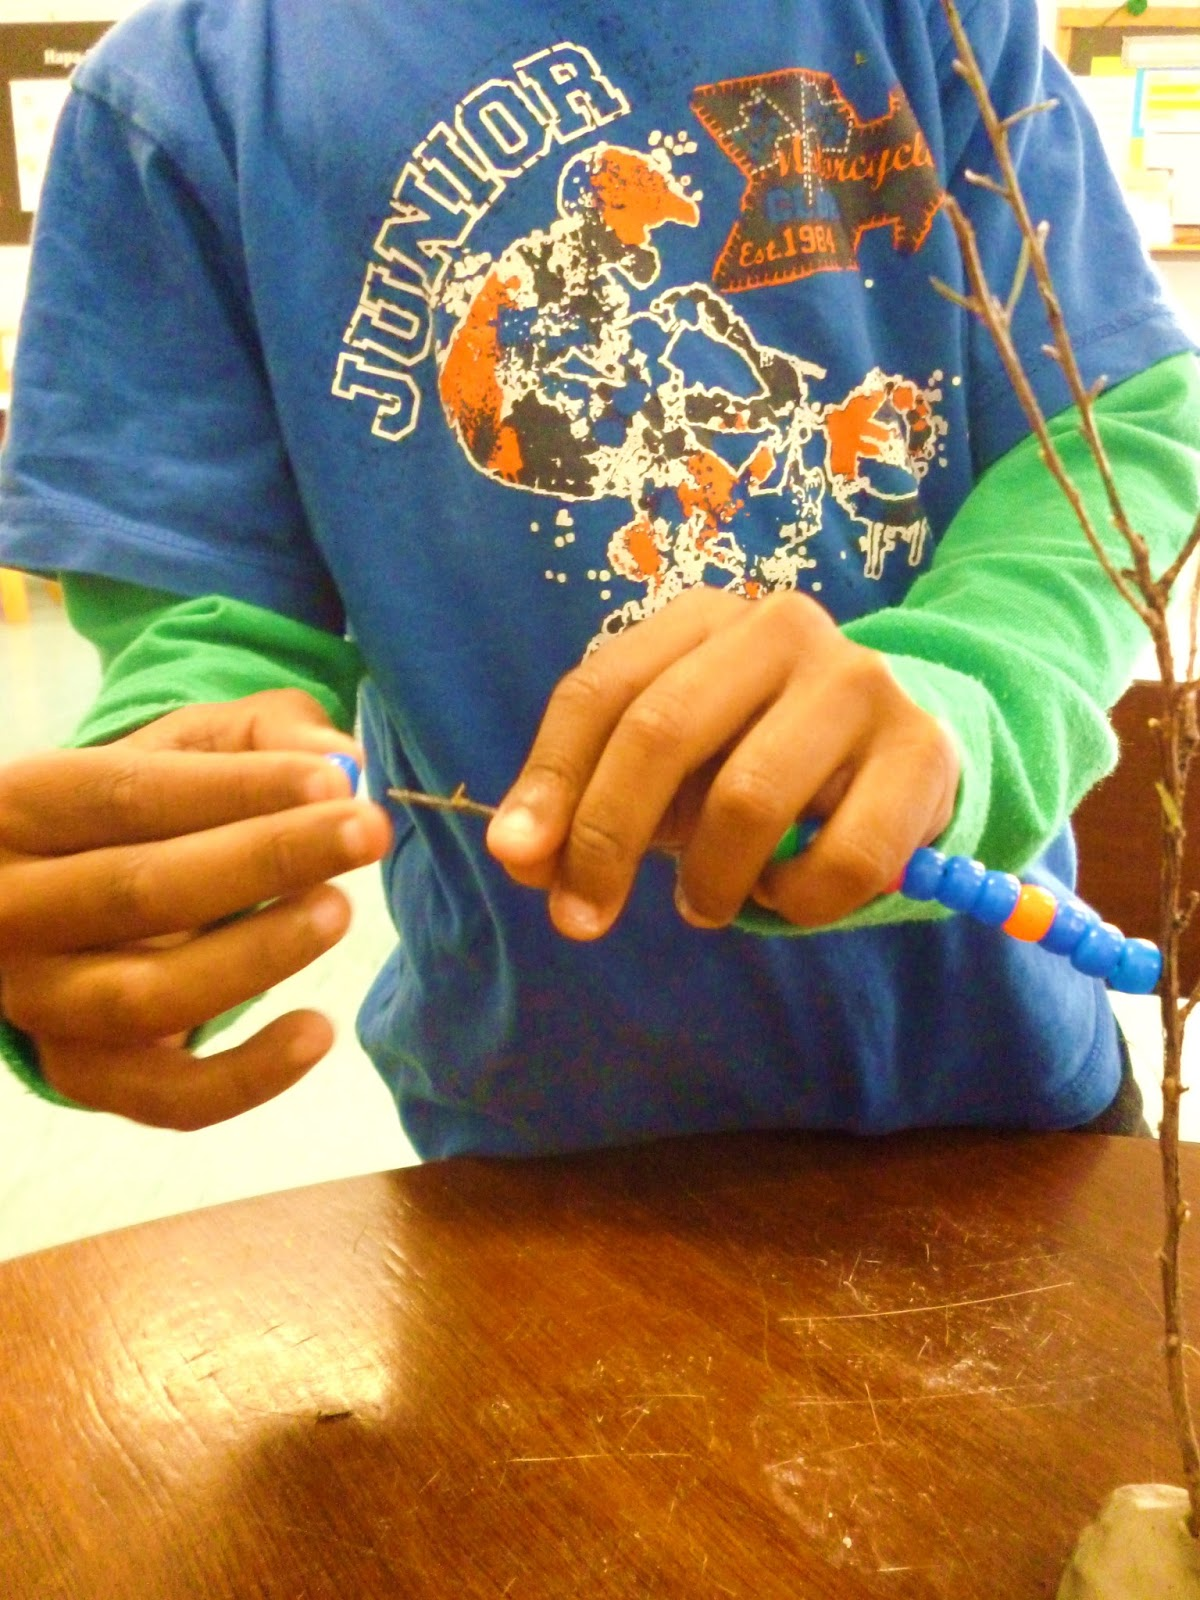 This Captured The Interest Of Other Children And Taika Kindly Shared His Beads So They Could Make Their Own Beading Trees